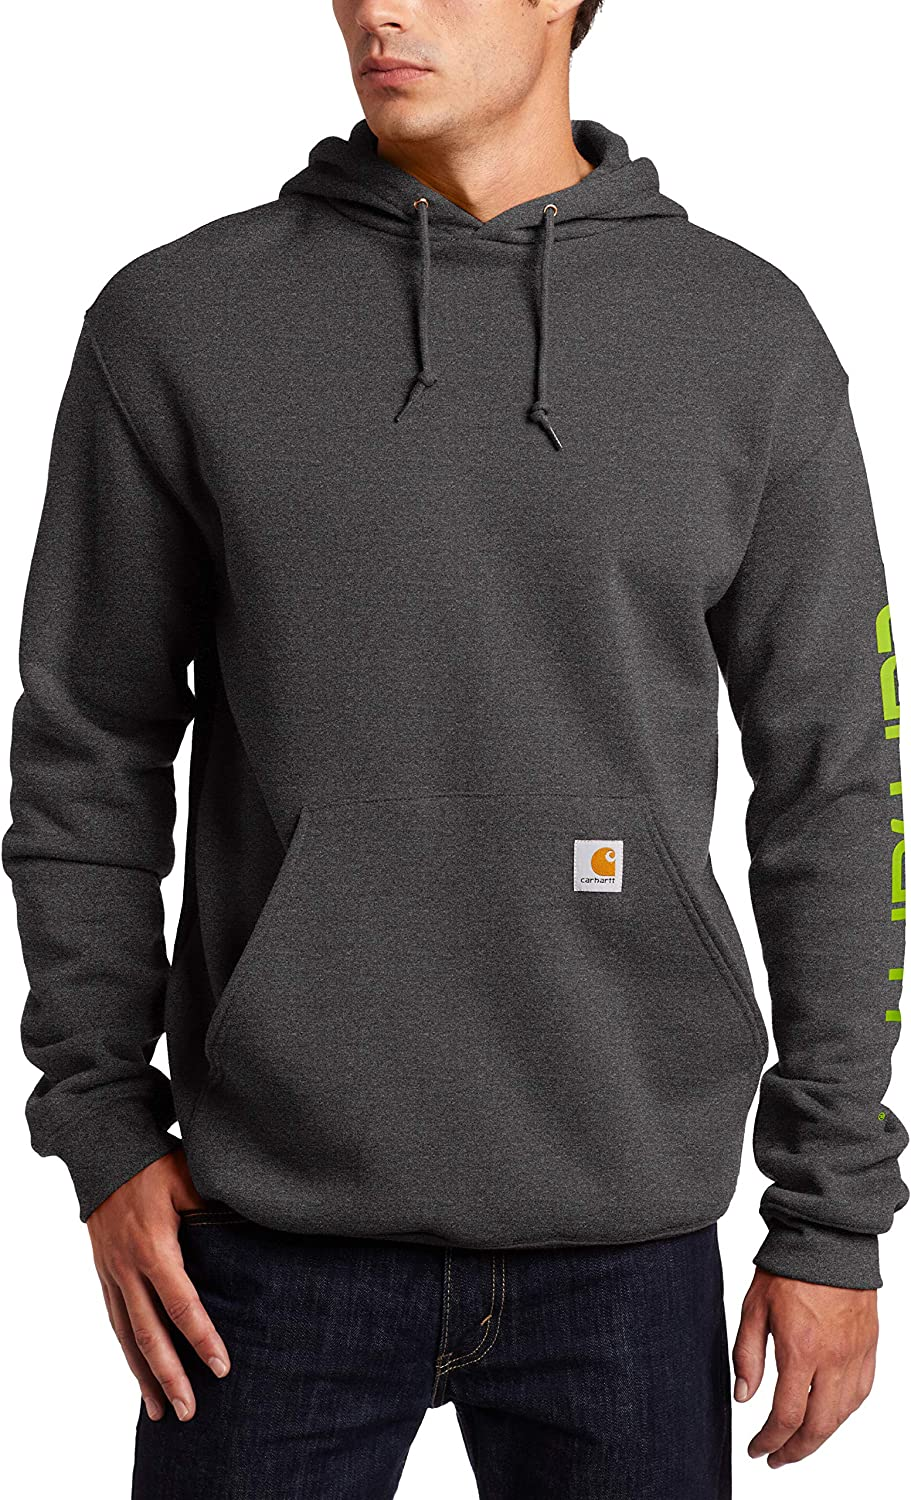 Carhartt Men's Midweight Sleeve Logo Hooded Sweatshirt (Regular and Big & Tall Sizes): Clothing